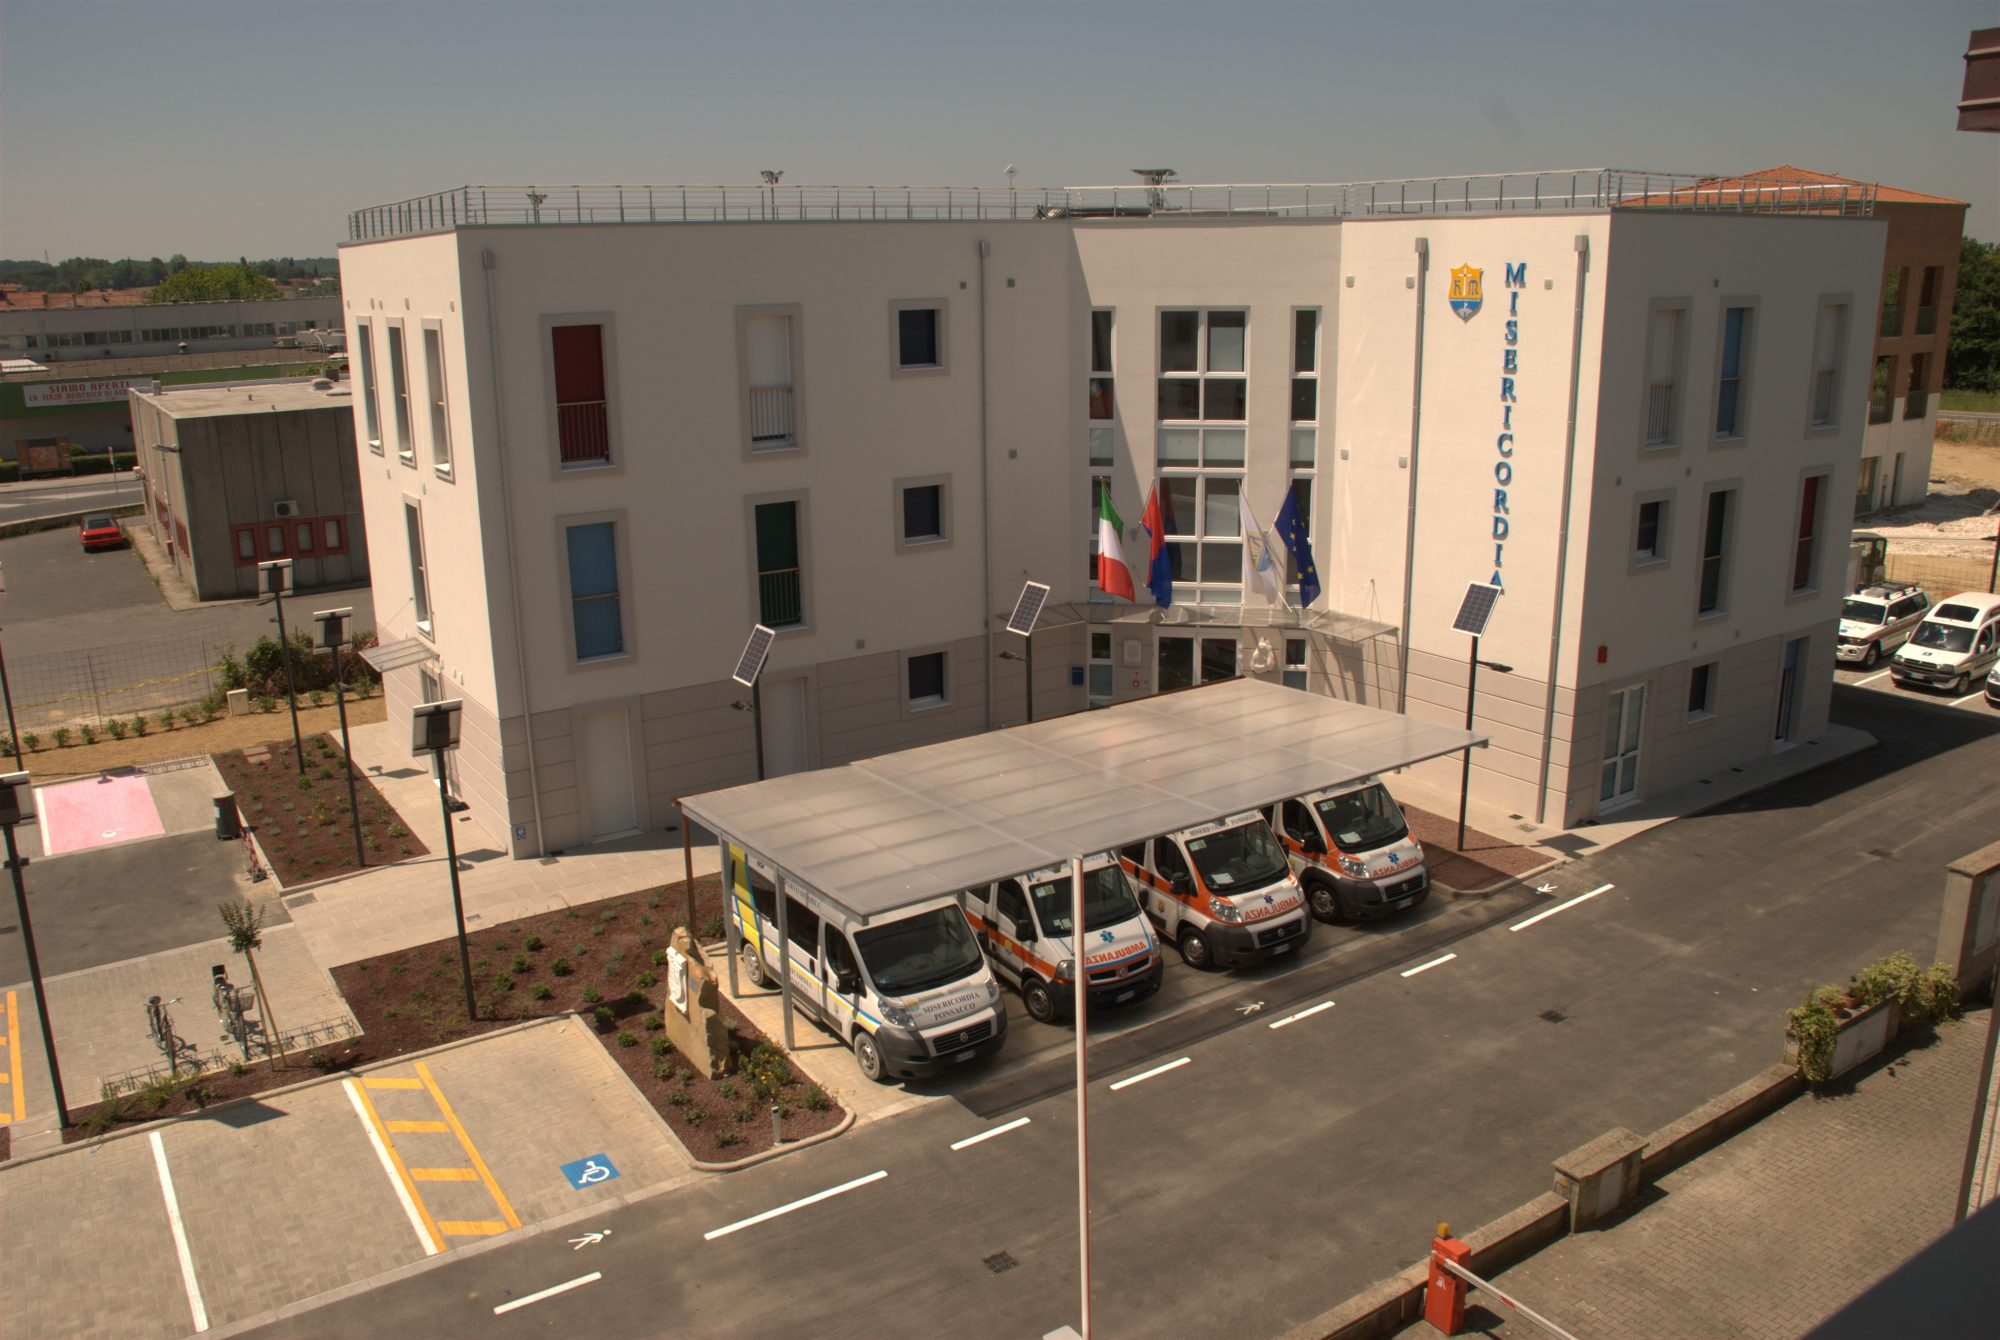 New headquarters of the charity organization Misericordia